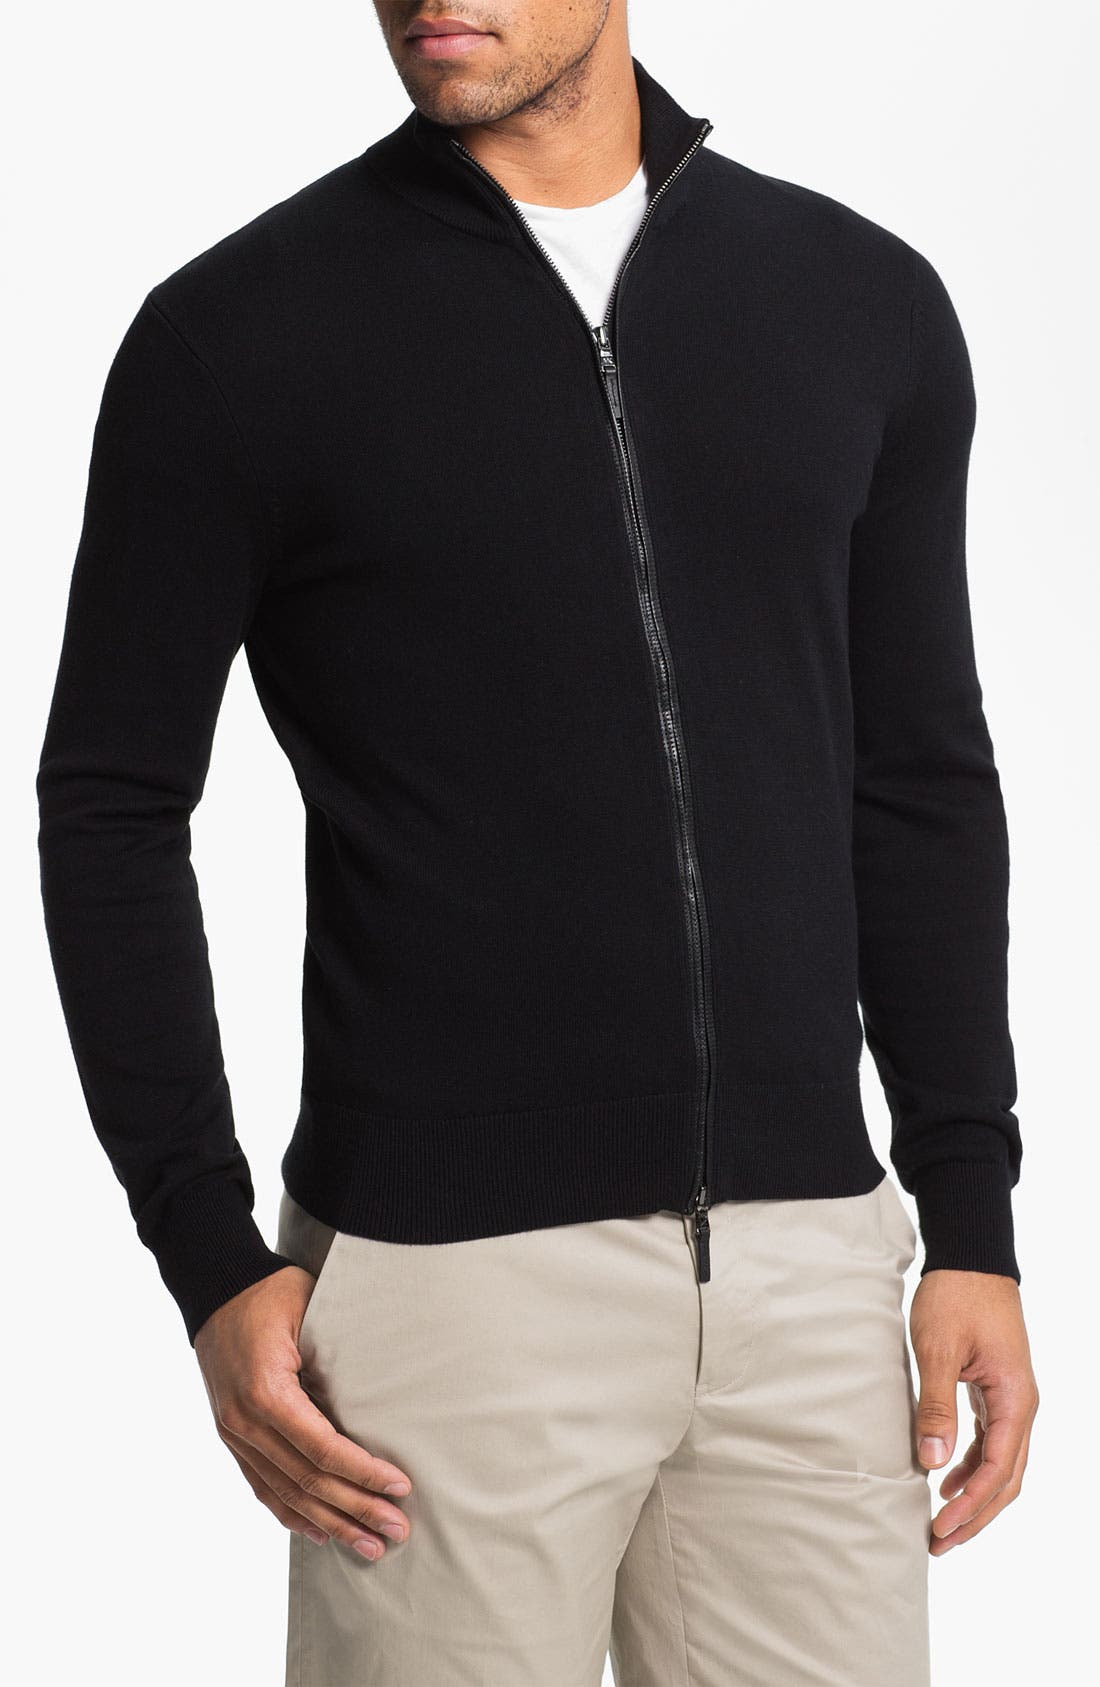 Alternate Image 1 Selected - Michael Kors Zip Cardigan